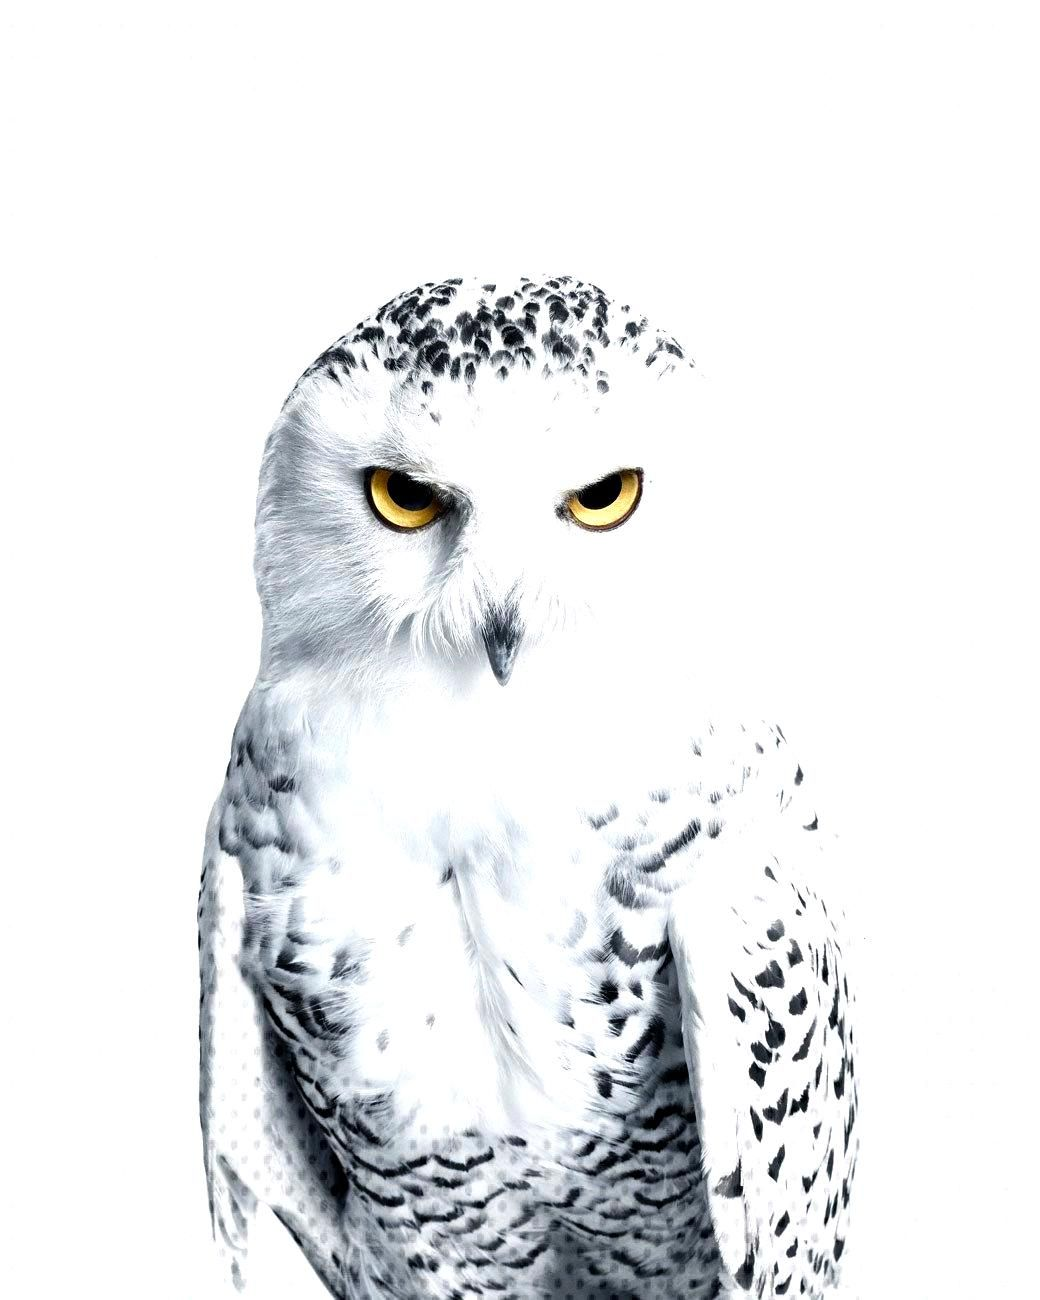 Randal Ford / The Animal Portrait Collection® / Snowy Owl No. 3 / Photography / 2016You can find S